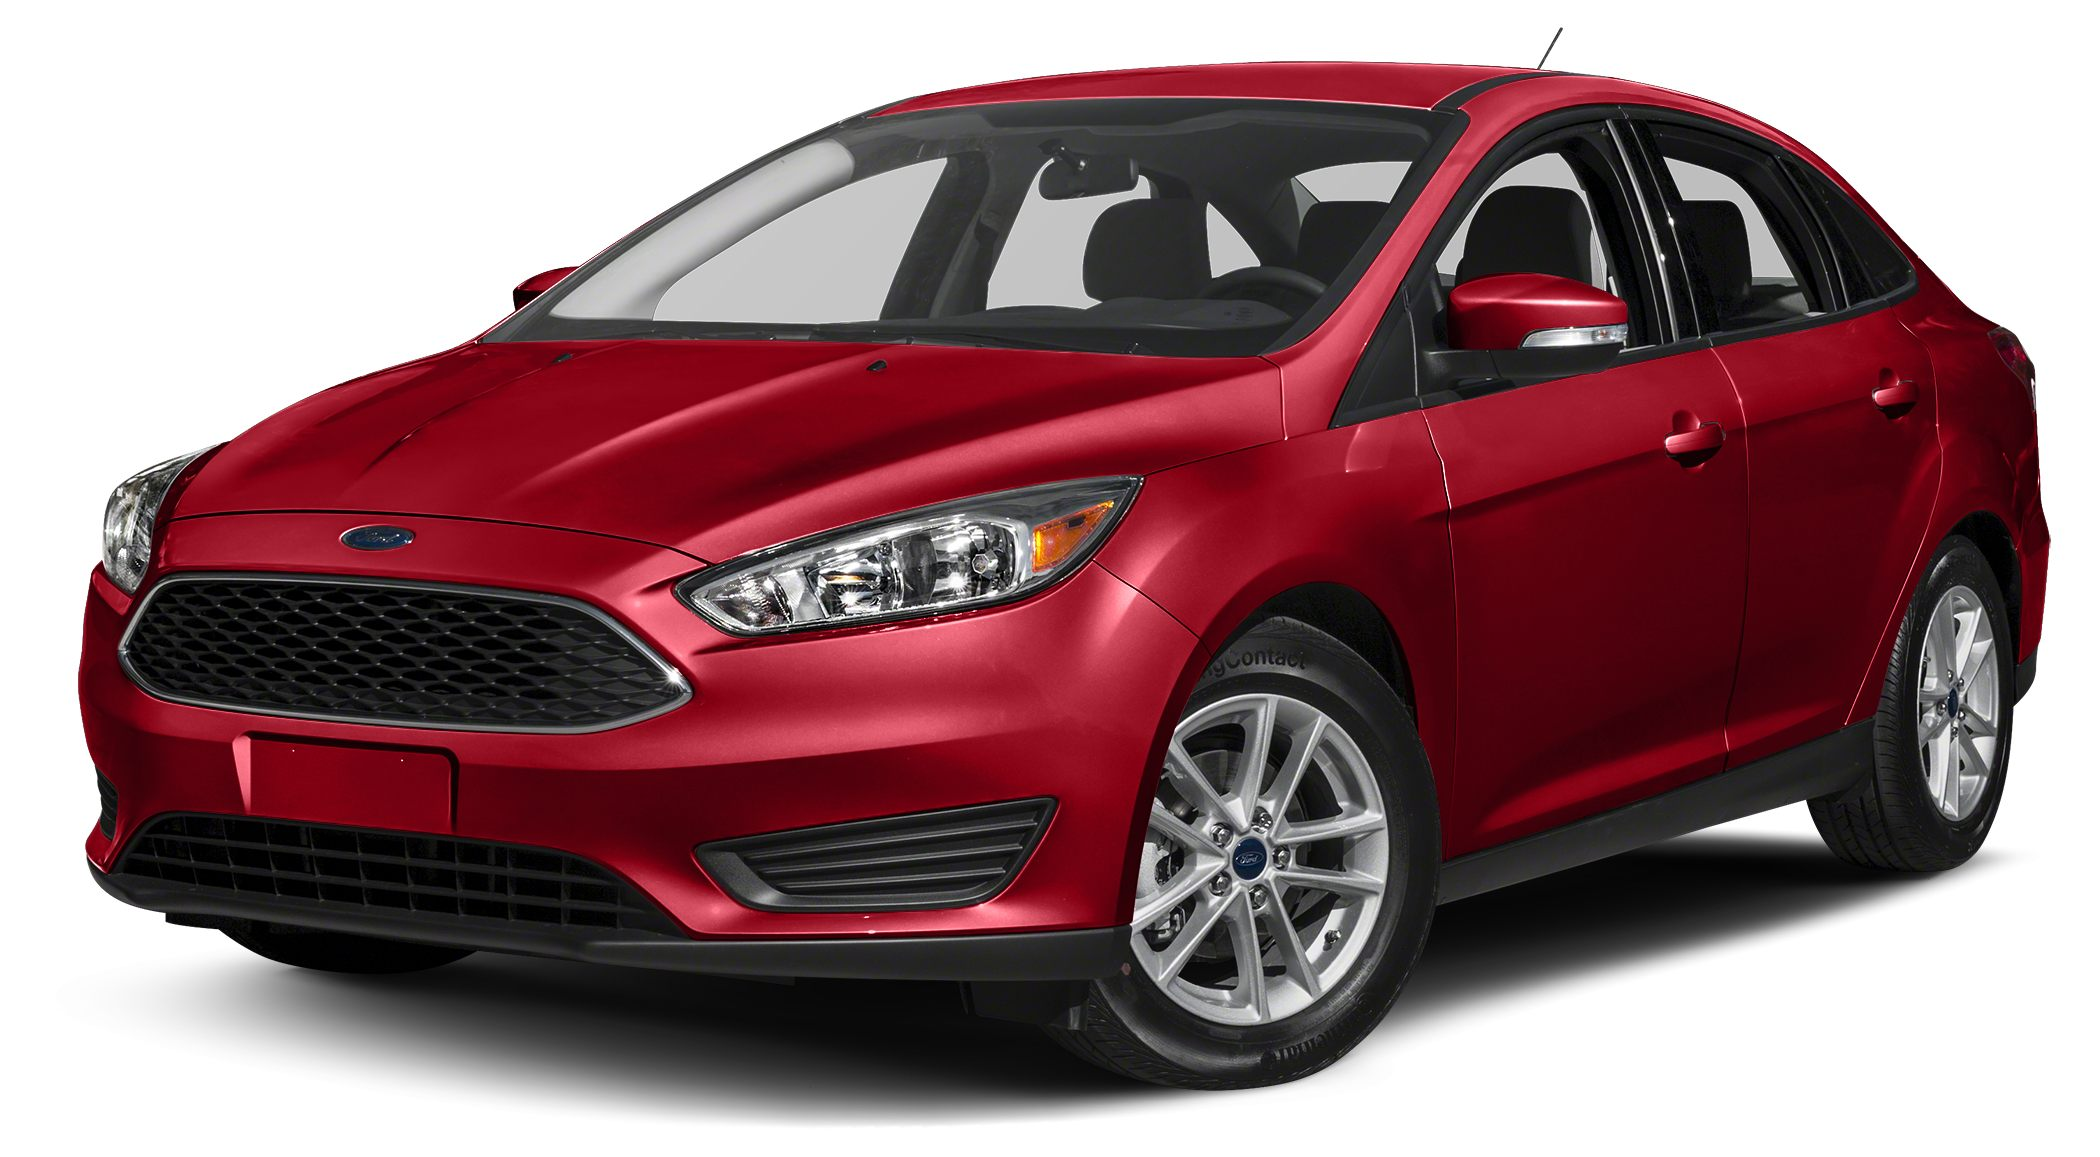 2015 Ford Focus SE Win a bargain on this 2015 Ford Focus SE while we have it Comfortable yet easy